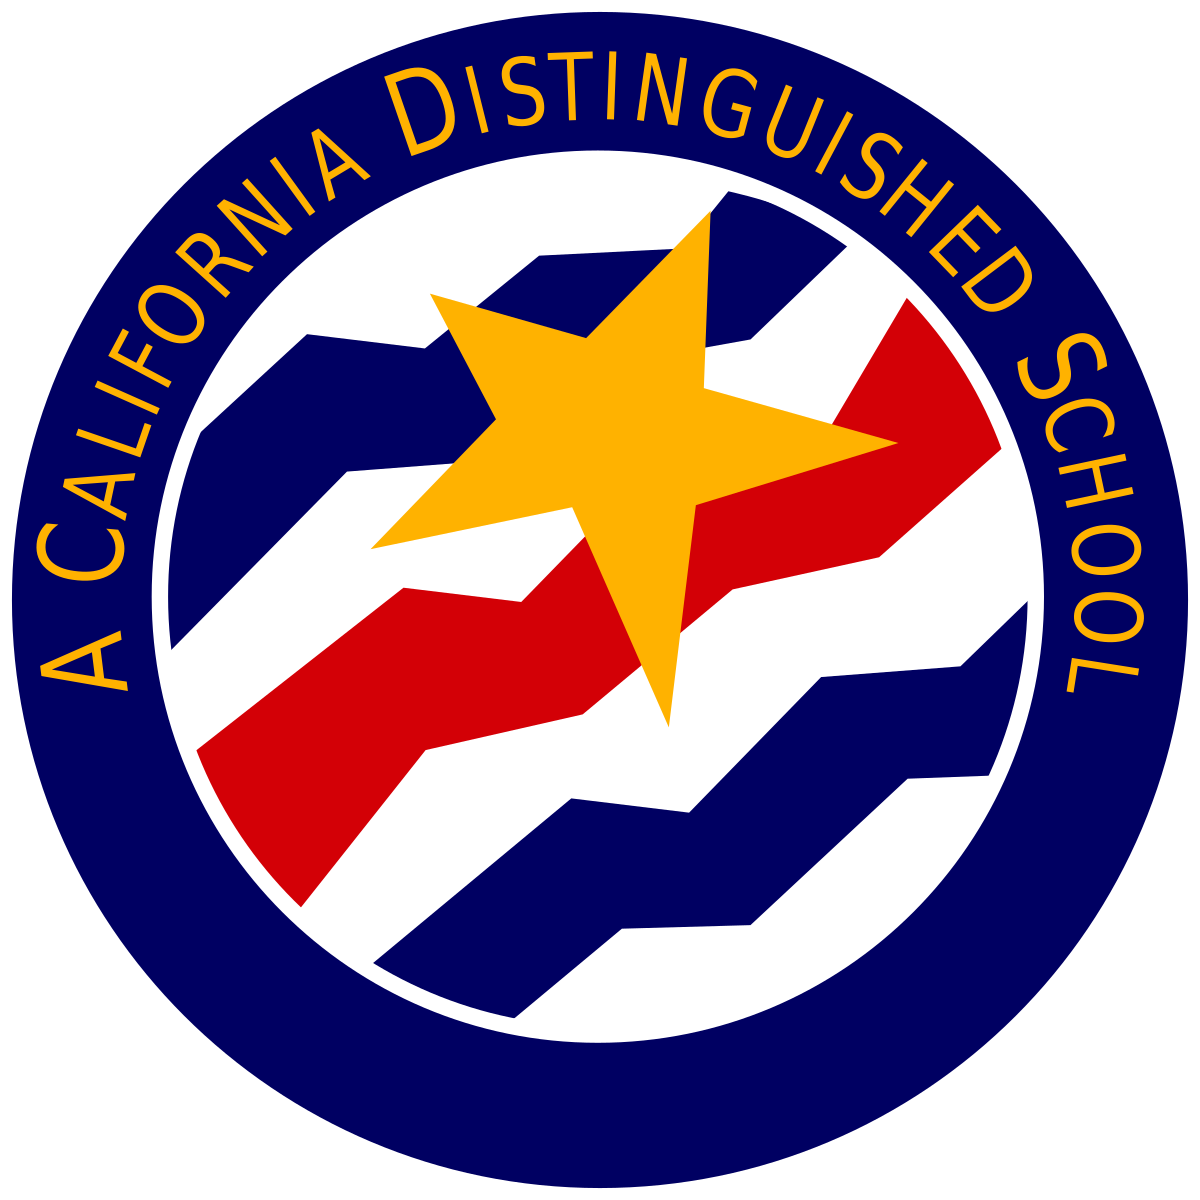 Image: California Distinguished School